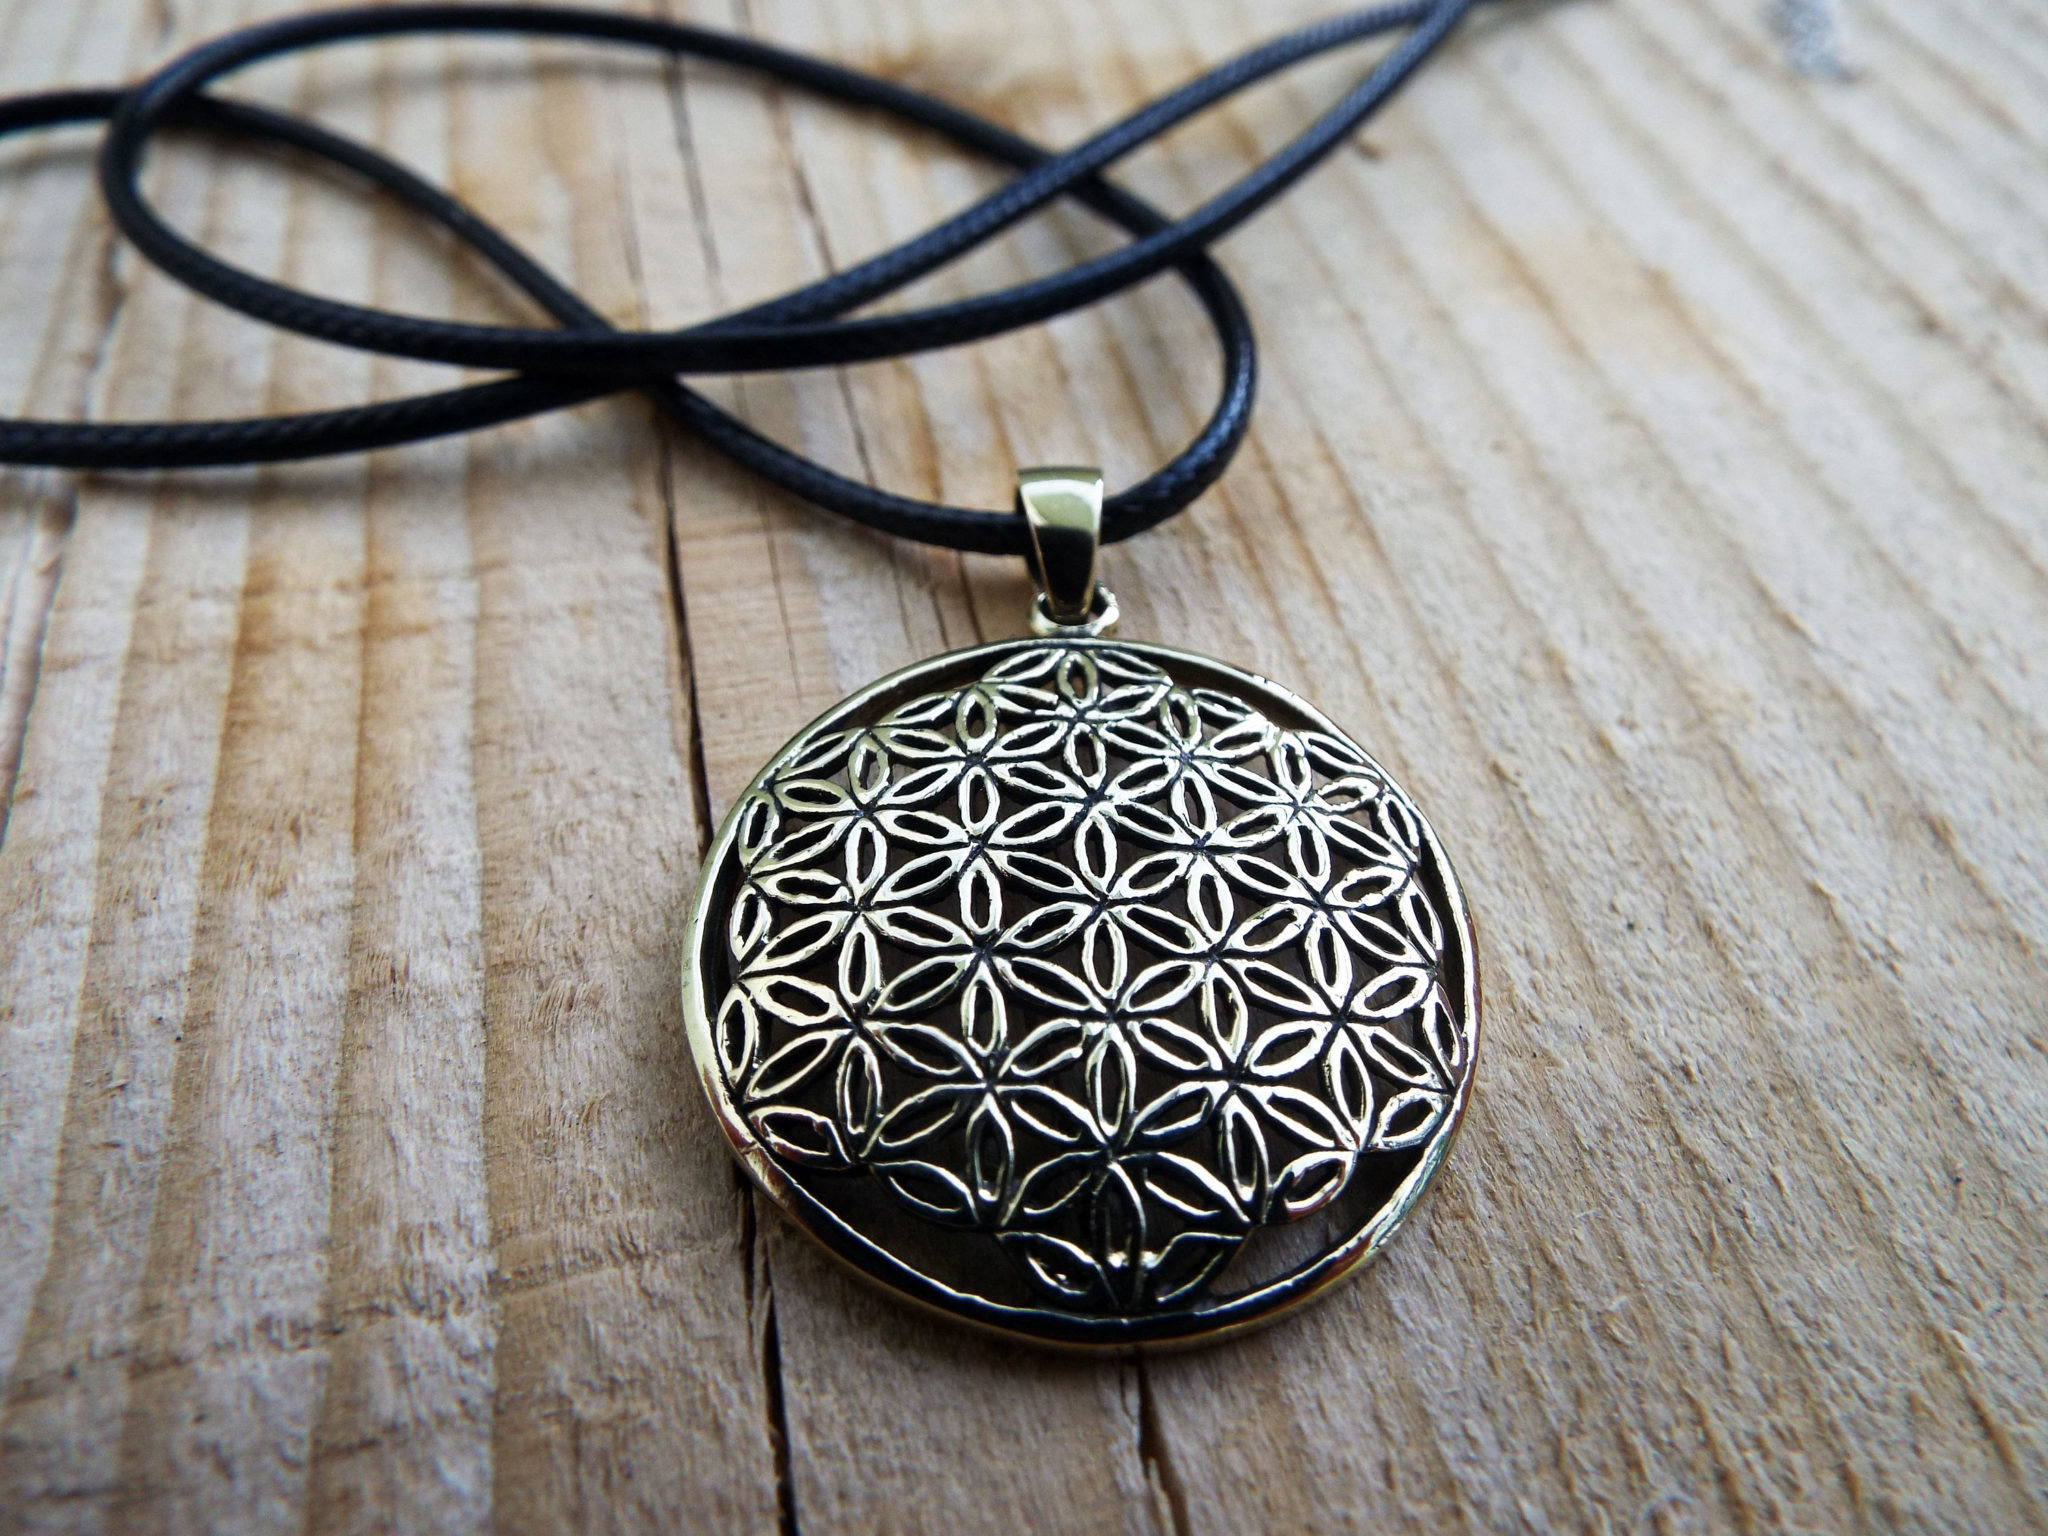 Flower of Life Seed of Life Pendant Handmade Protection Bronze Ancient  Symbol Necklace Jewelry Floral Boho